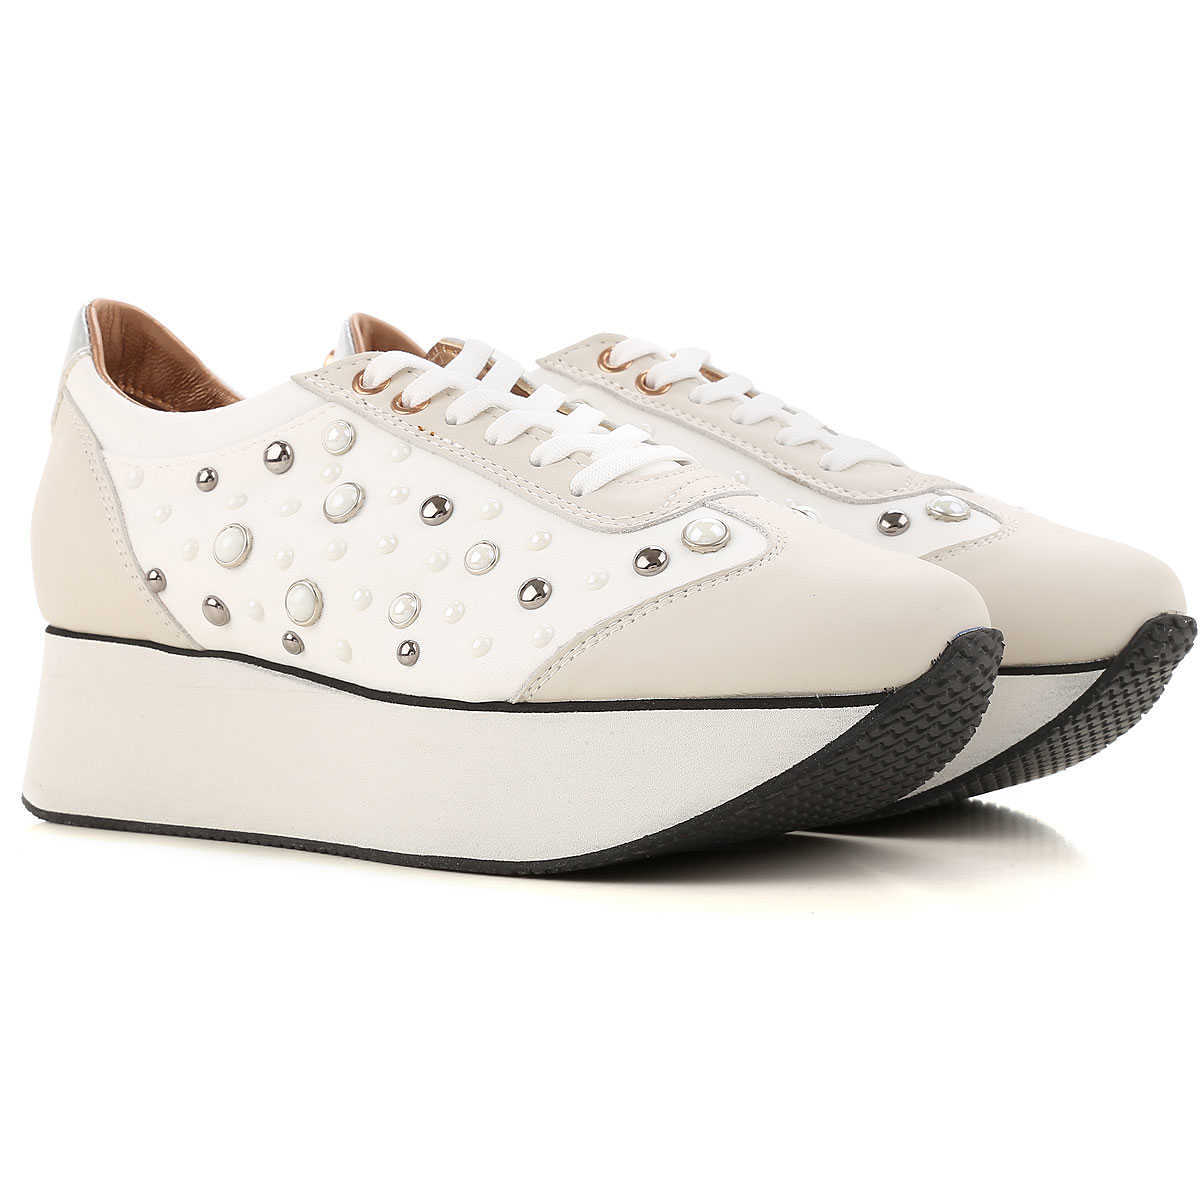 Alexander Smith Sneakers for Women On Sale in Outlet White UK - GOOFASH